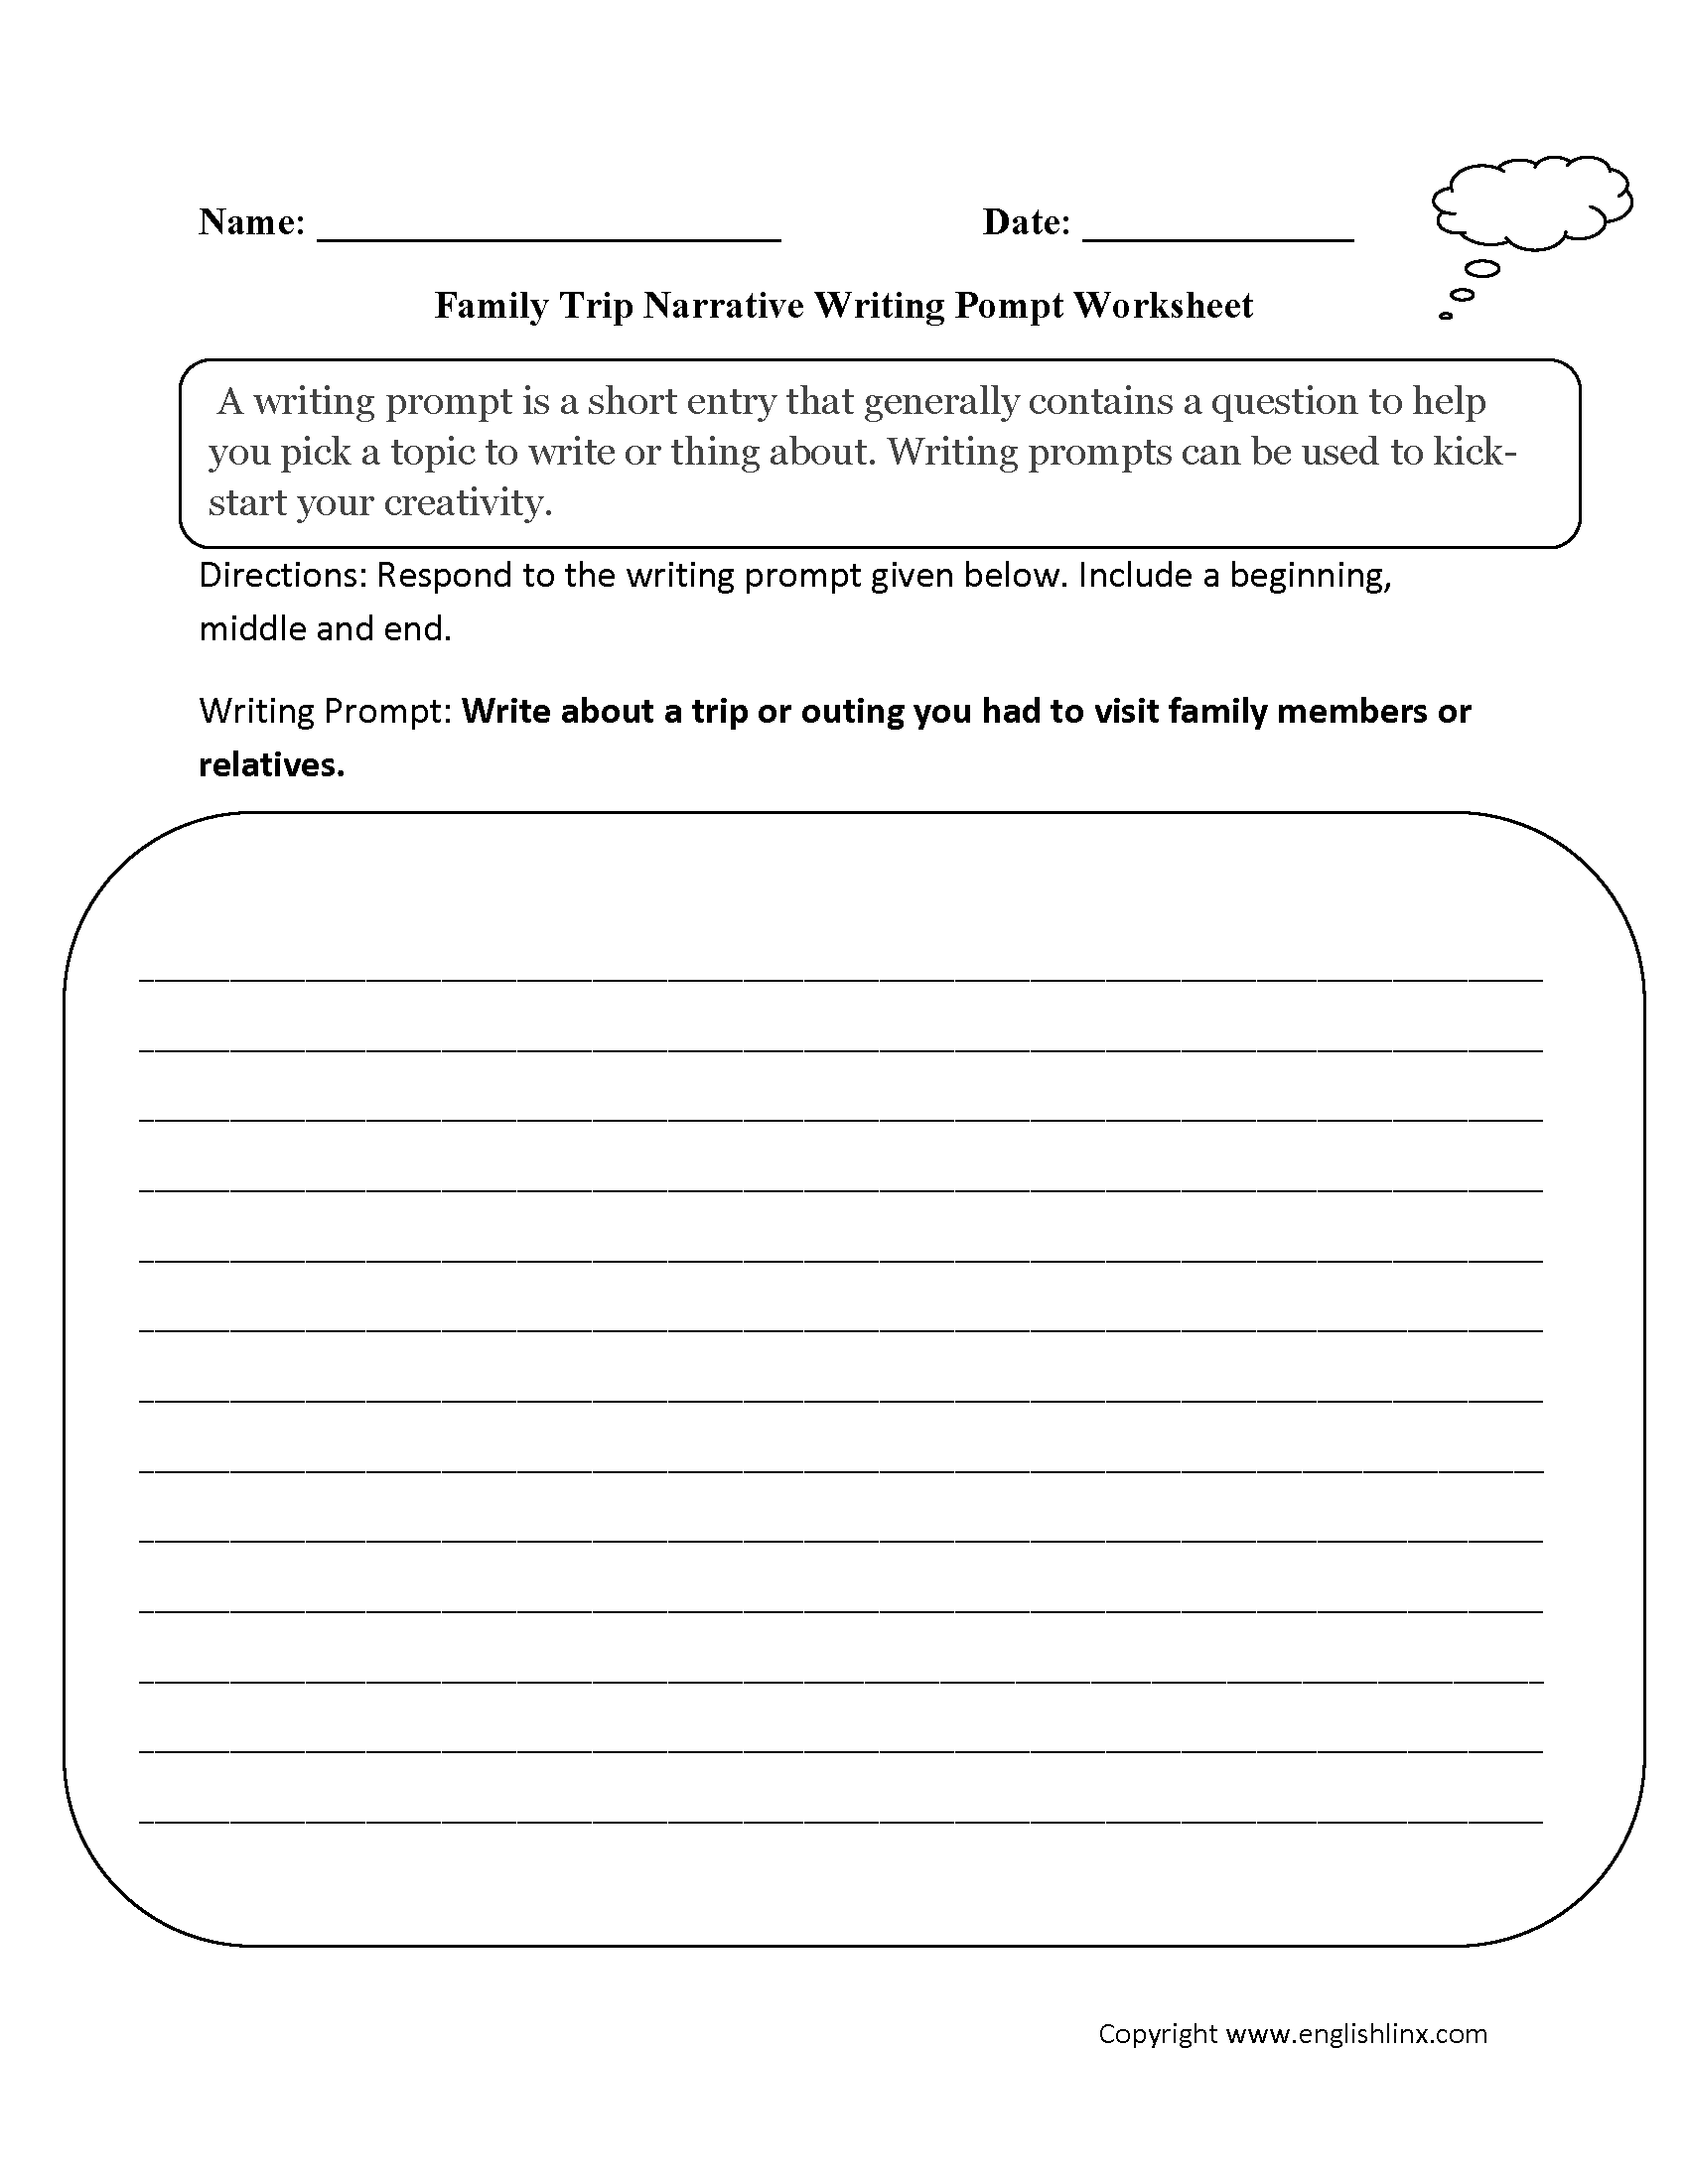 com writing prompts worksheets writing prompts worksheets